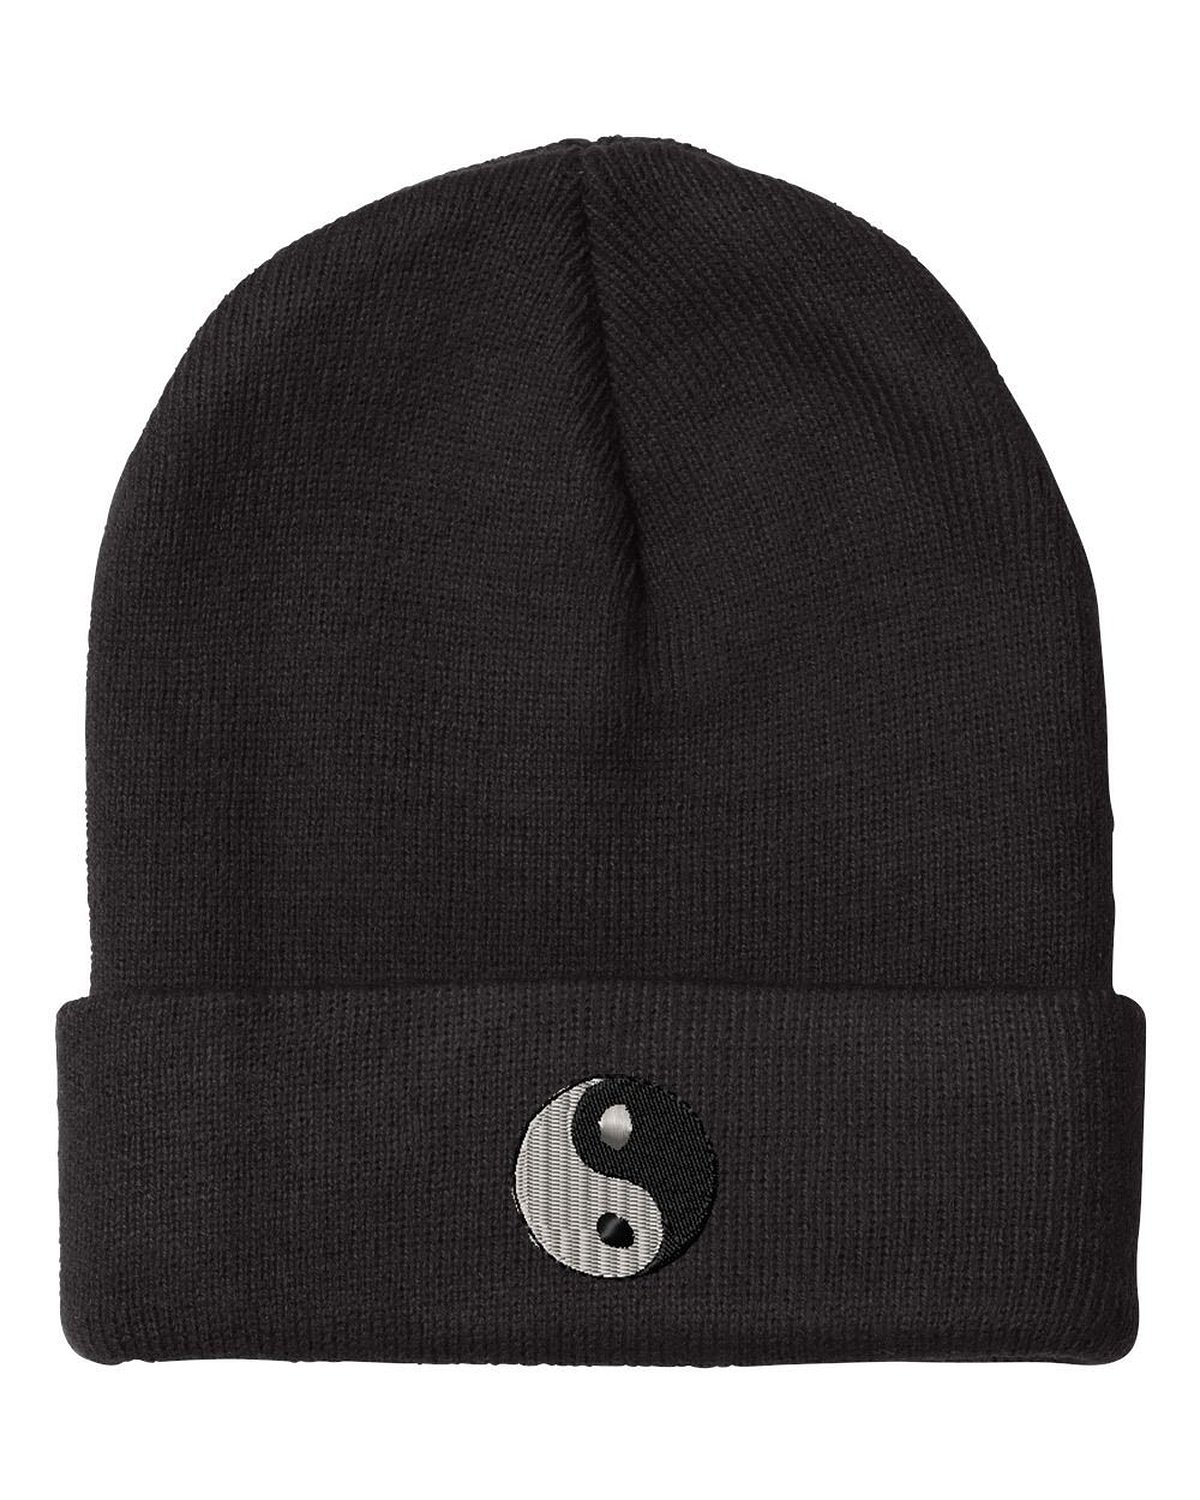 Amazon.com: ying yang embroidery embroidered beanie skull cap hat: clothing